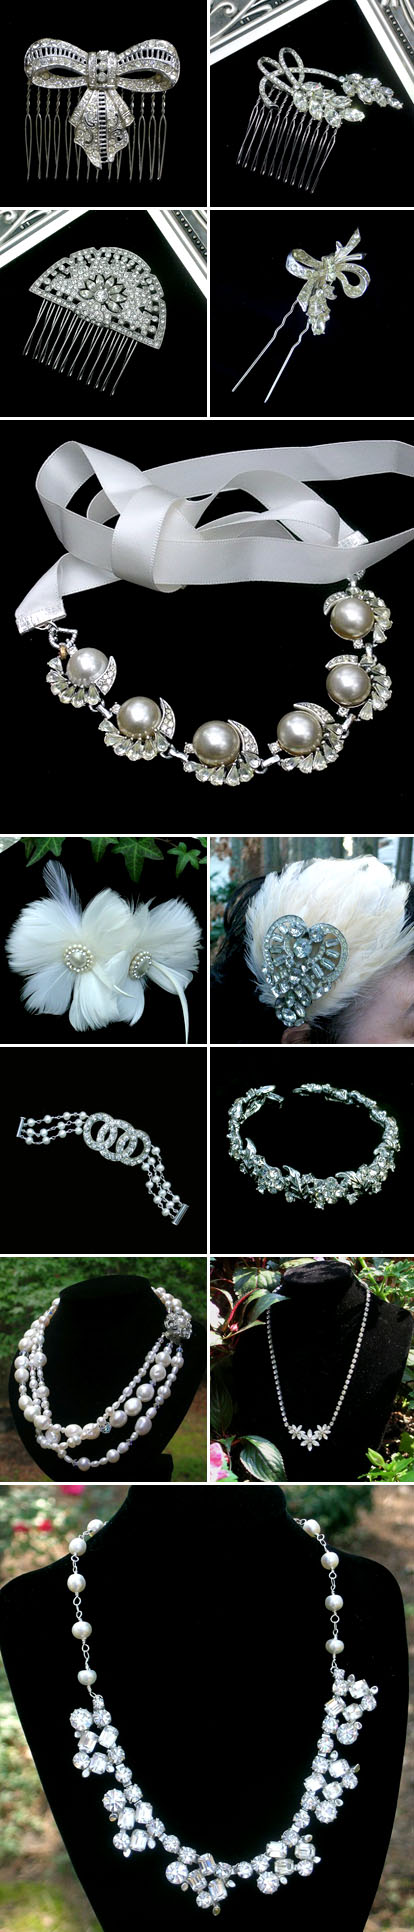 Authentic vintage wedding accessories and jewelry from Bel Canto Designs